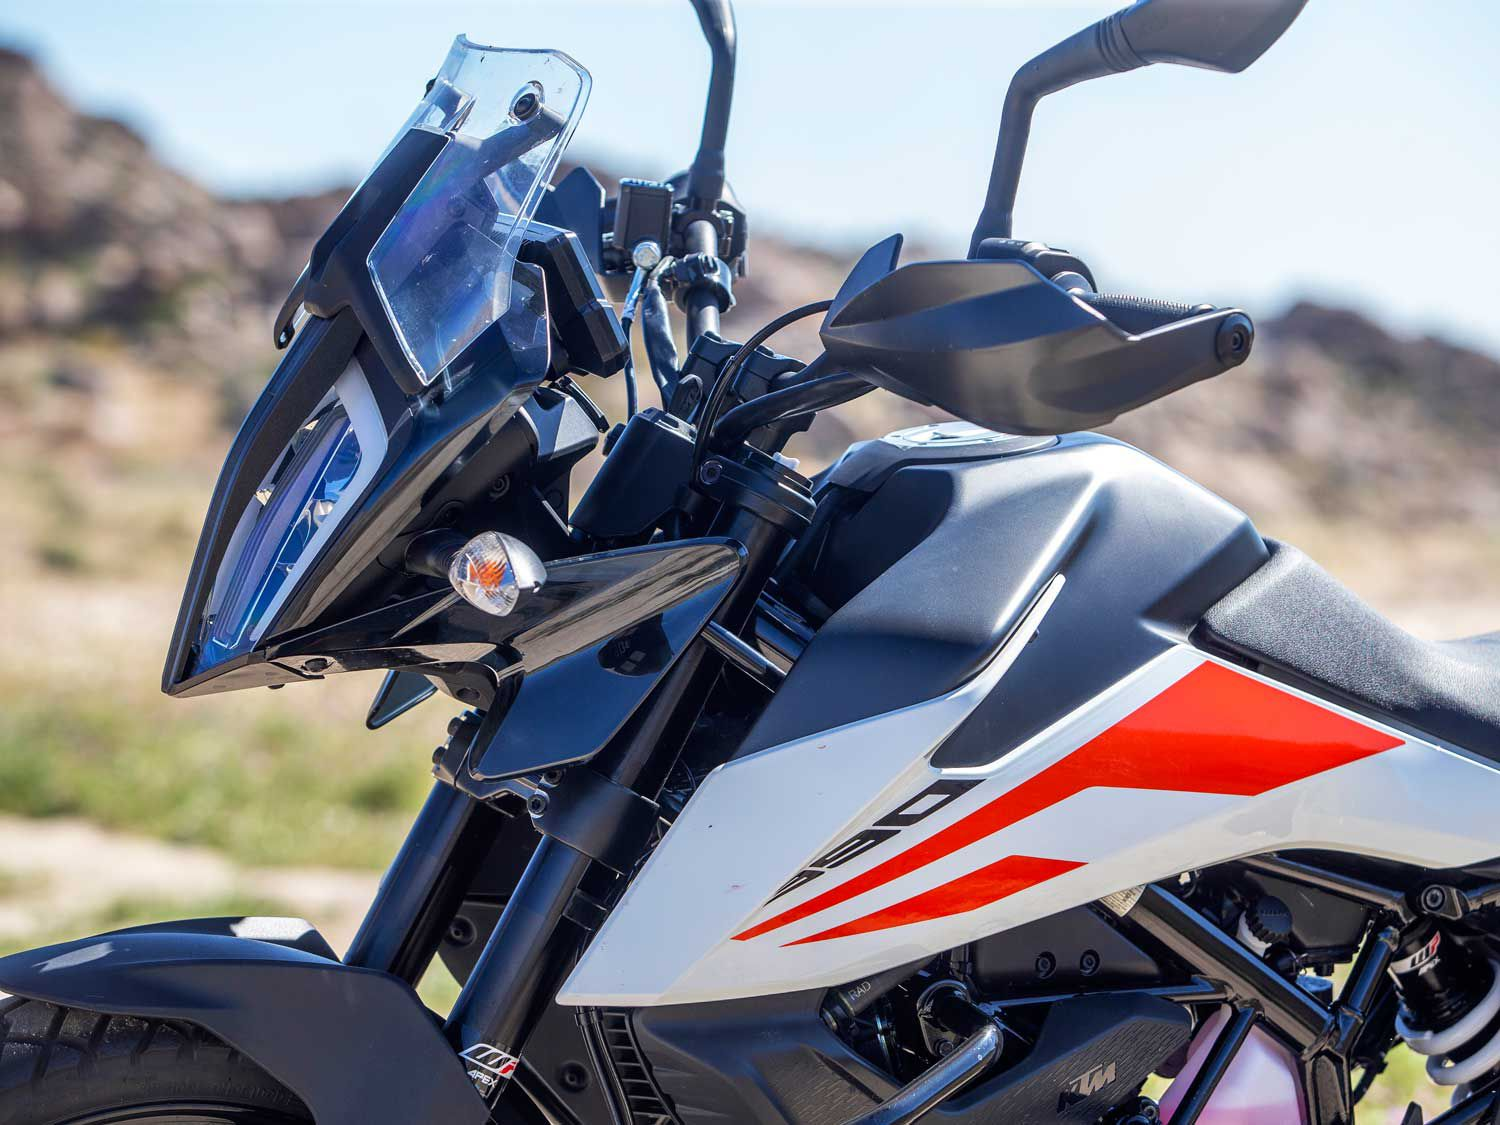 The 390 Adventure looks like a carbon copy of KTM's parallel-twin-powered 790 Adventure ($12,699) which costs more than double the 390.